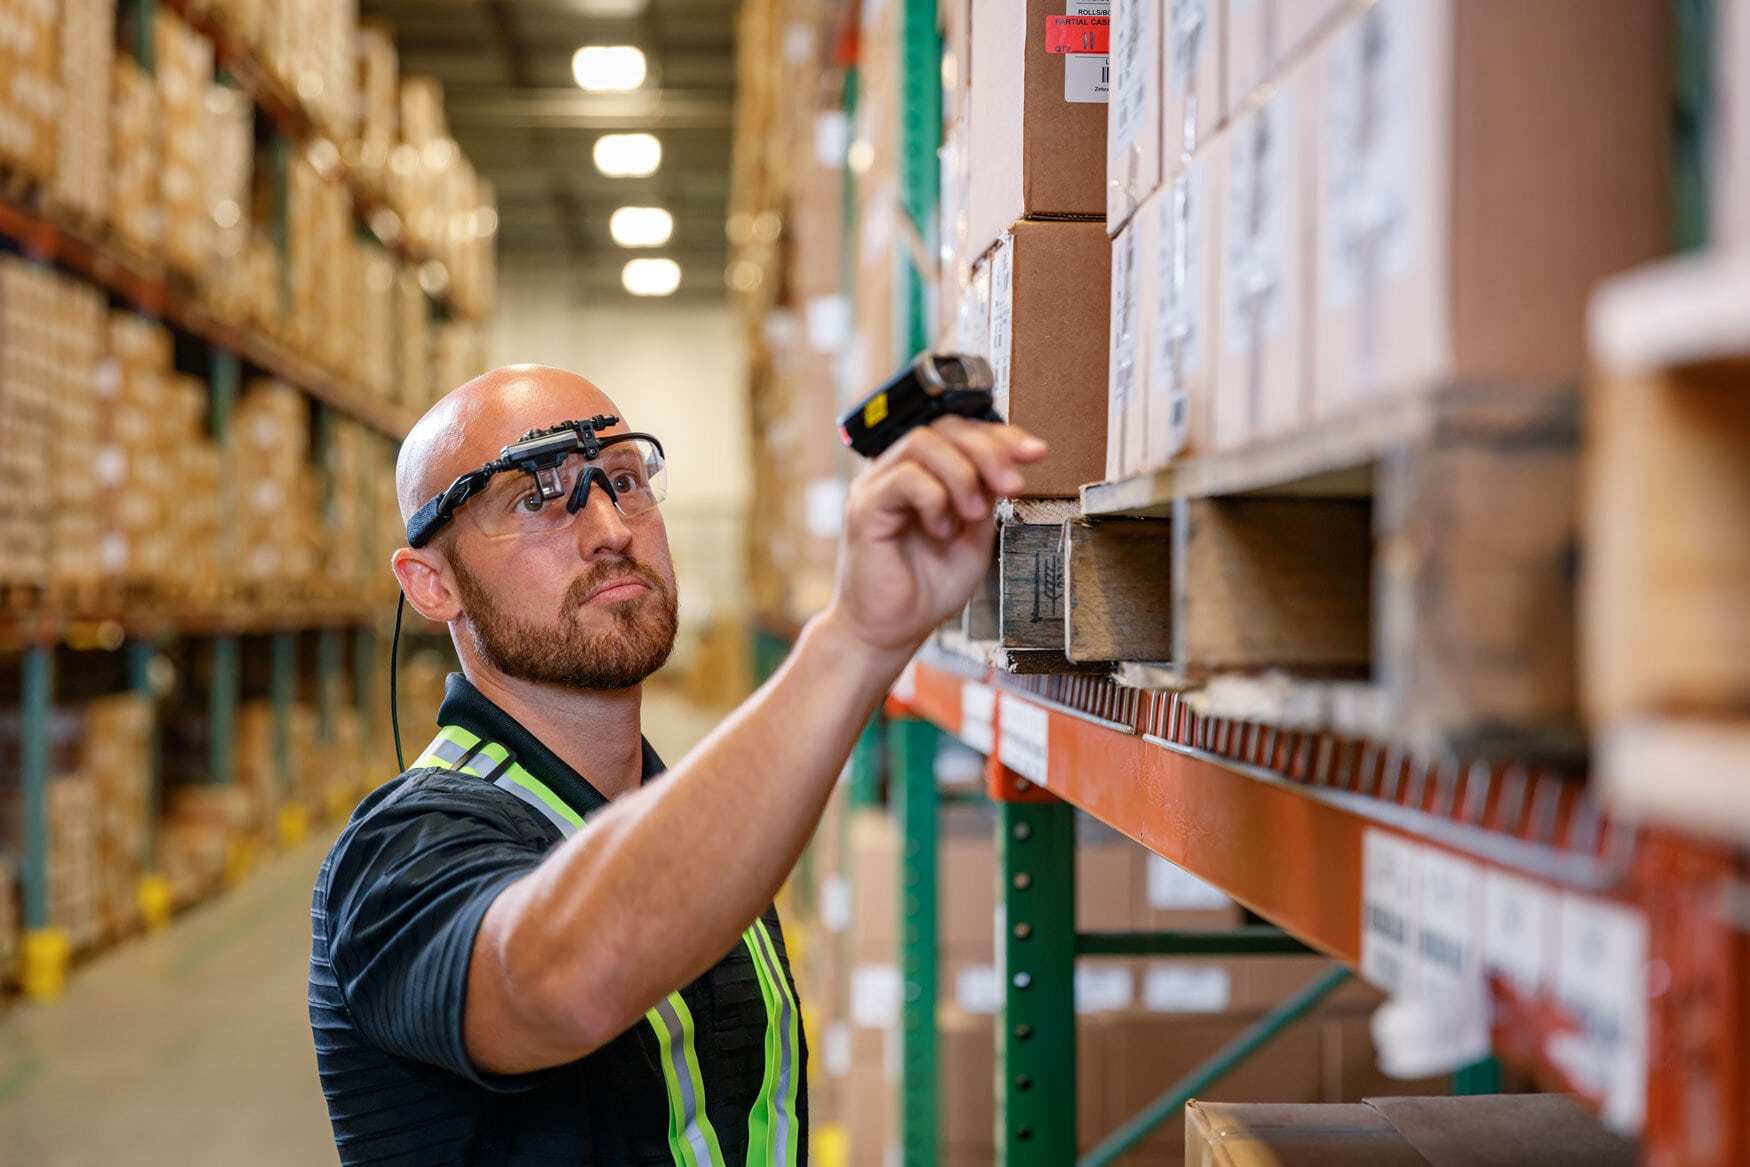 Warehouse Technology: 7 Important Technologies in 2020